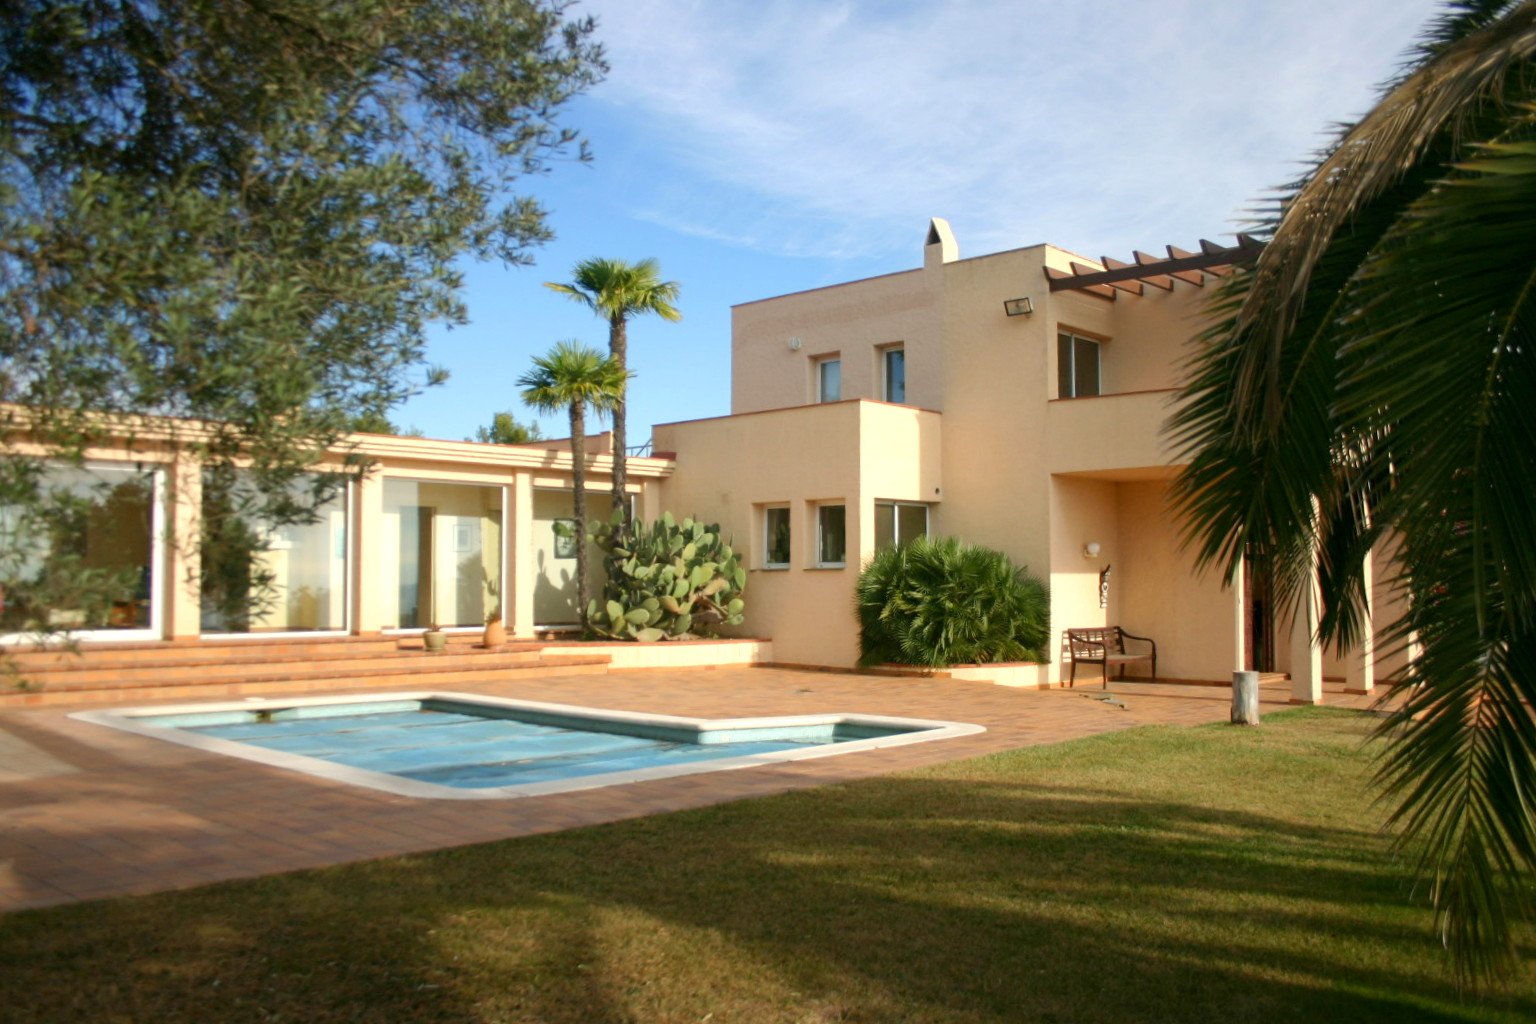 Villa in Fontpineda, Spain - Sold 2015